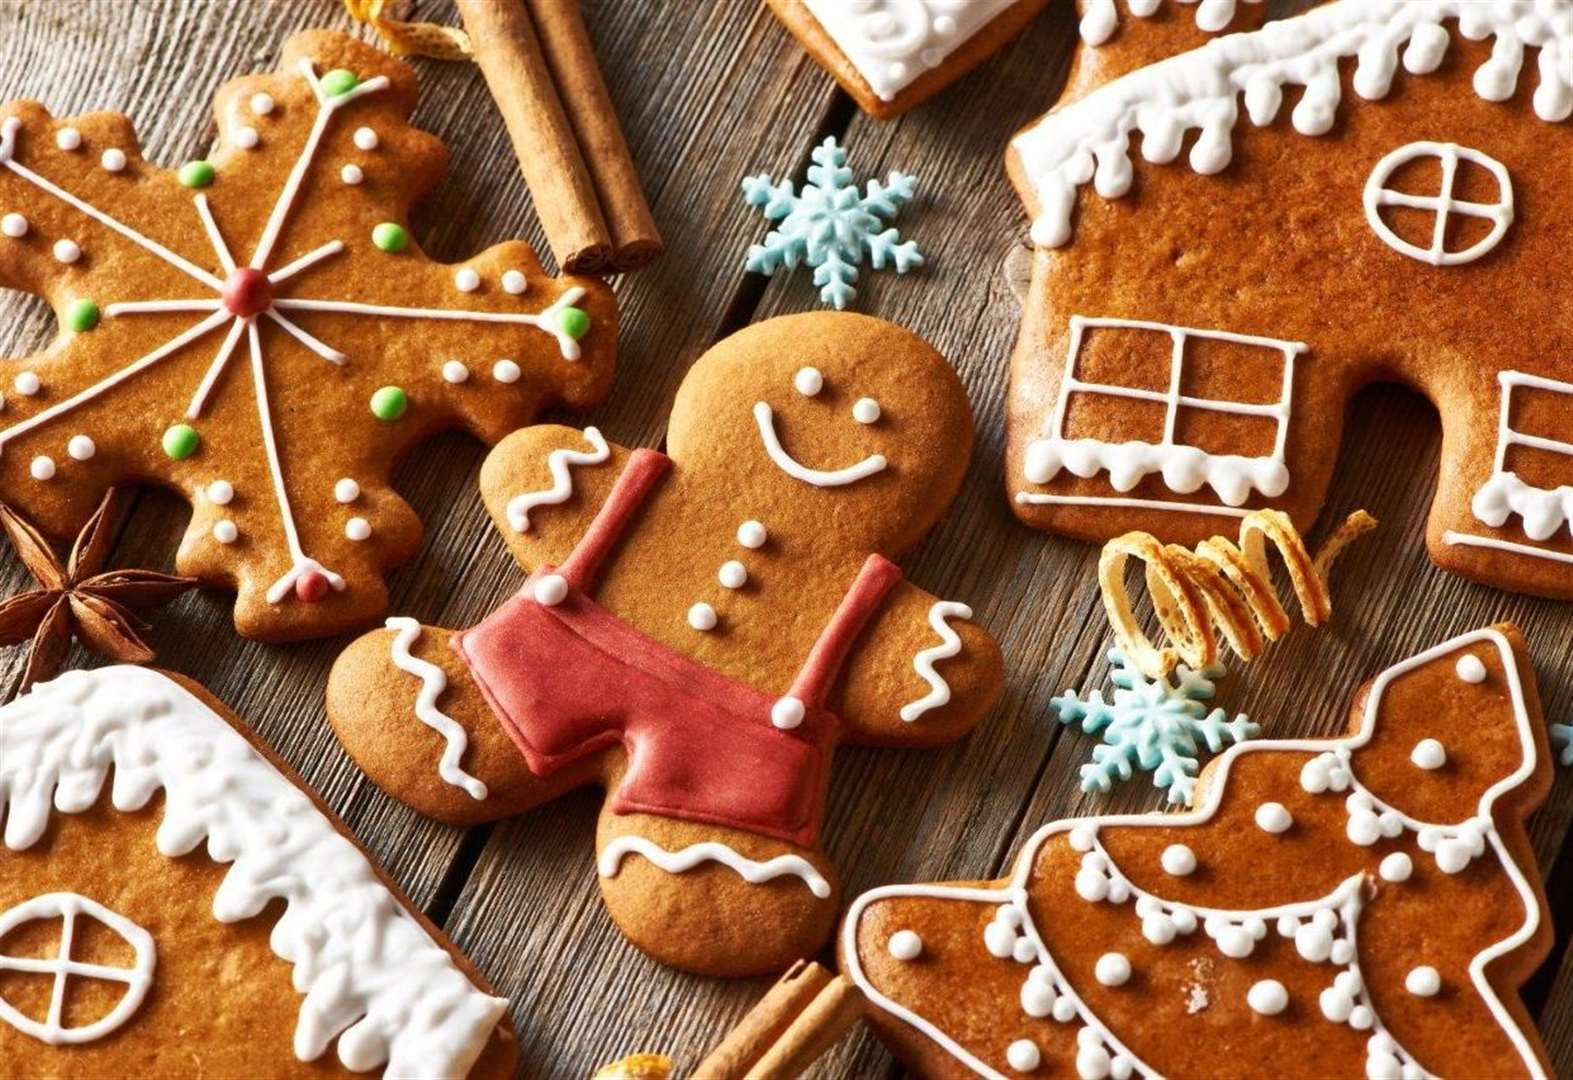 'Simply the best' gingerbread recipe for kids